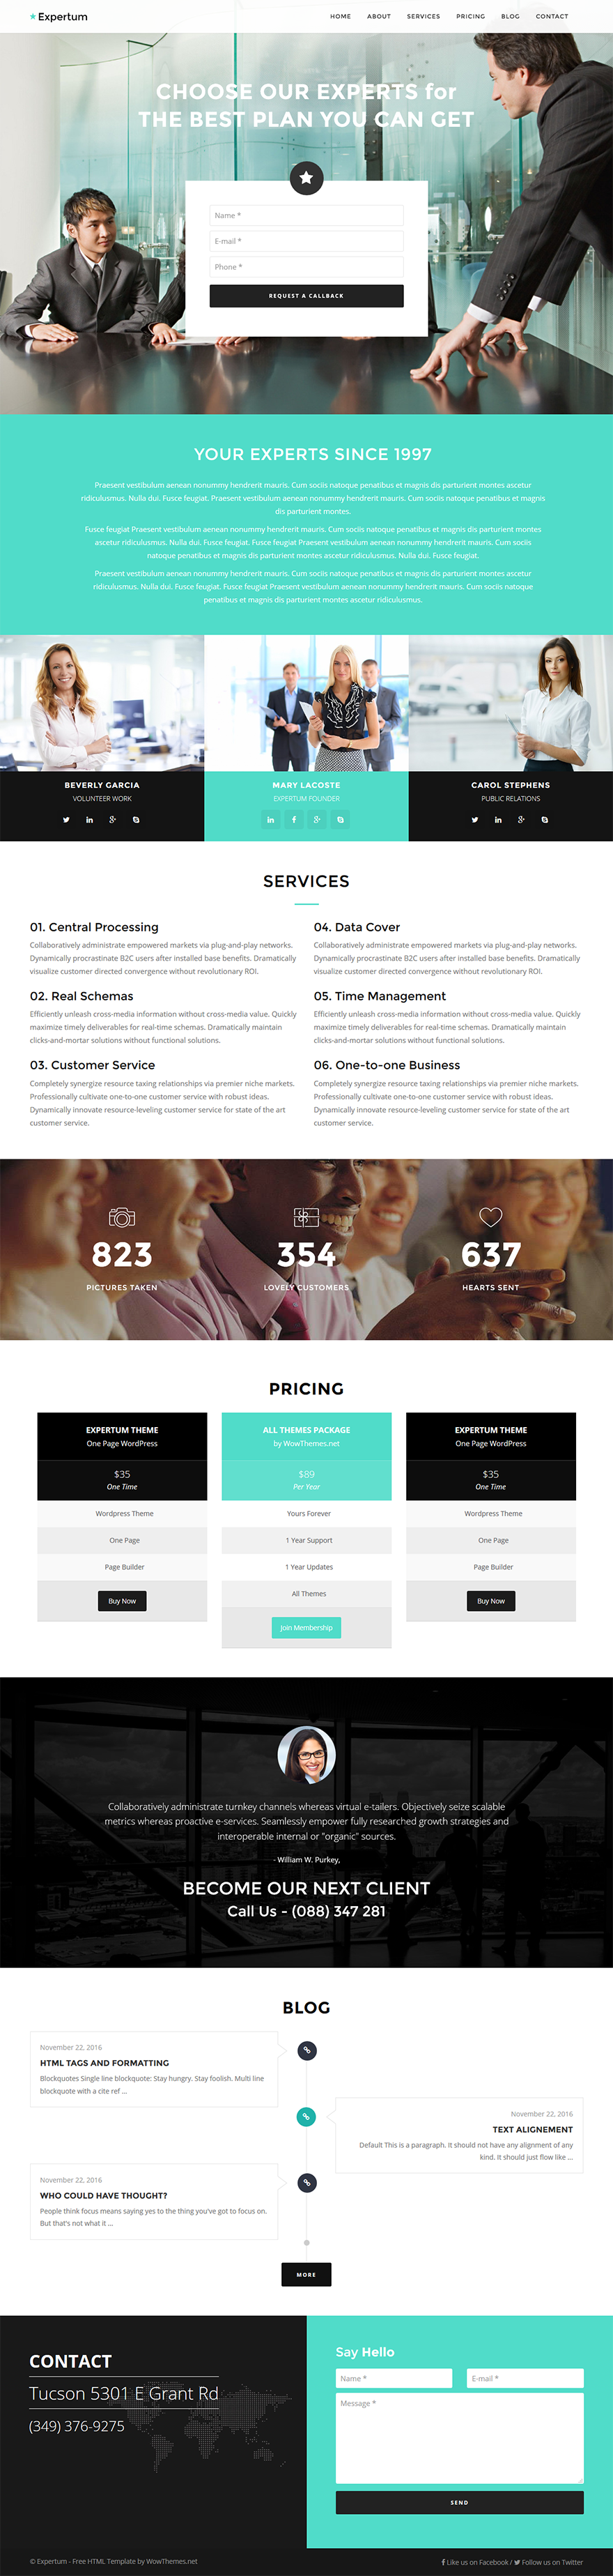 Free Bootstrap HTML Website Template - Expertum - GraphicArmy ...